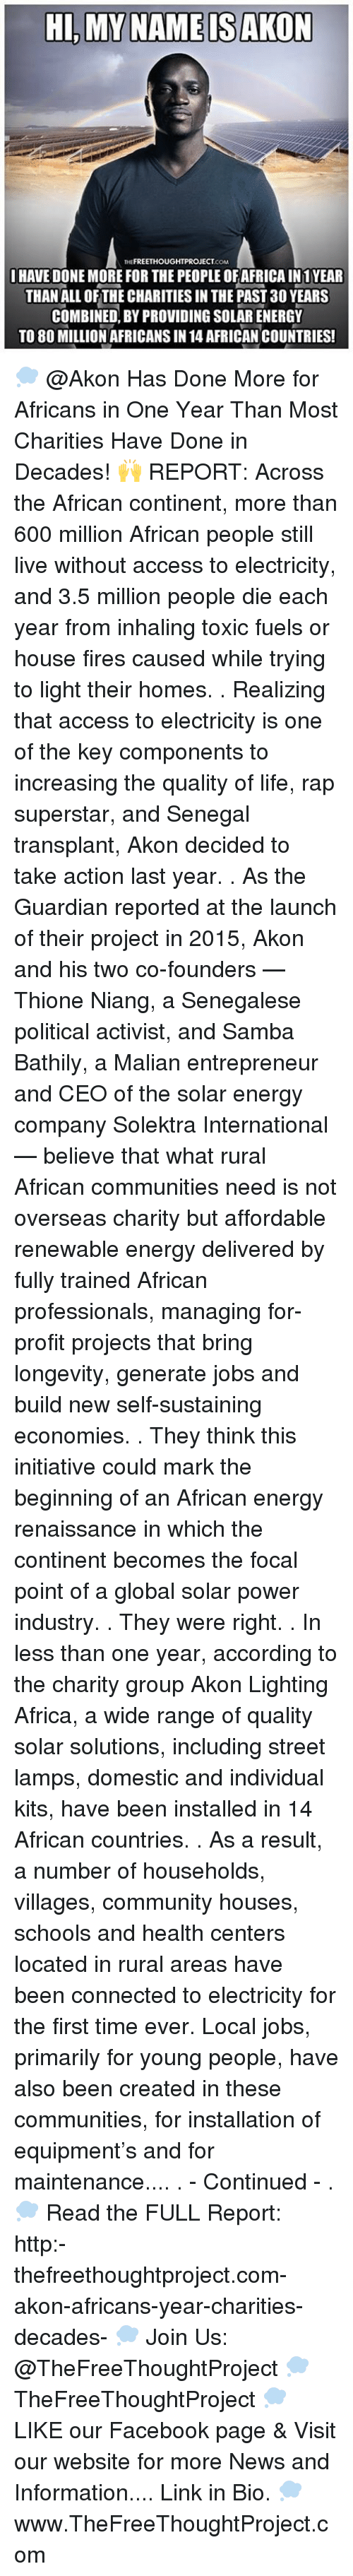 Akon, Memes, and Access: HI, MY NAME IS AKON  FREETHOUGHTPROJECT  I HAVE DONE MORE FOR THE PEOPLEOFAFRICAIN1 YEAR  THAN ALL OF THE CHARITIES IN THE PAST 30 YEARS  COMBINED BY PROVIDING SOLAR ENERGY  TO 80 MILLION AFRICANS IN 14 AFRICAN COUNTRIES! 💭 @Akon Has Done More for Africans in One Year Than Most Charities Have Done in Decades! 🙌 REPORT: Across the African continent, more than 600 million African people still live without access to electricity, and 3.5 million people die each year from inhaling toxic fuels or house fires caused while trying to light their homes. . Realizing that access to electricity is one of the key components to increasing the quality of life, rap superstar, and Senegal transplant, Akon decided to take action last year. . As the Guardian reported at the launch of their project in 2015, Akon and his two co-founders — Thione Niang, a Senegalese political activist, and Samba Bathily, a Malian entrepreneur and CEO of the solar energy company Solektra International — believe that what rural African communities need is not overseas charity but affordable renewable energy delivered by fully trained African professionals, managing for-profit projects that bring longevity, generate jobs and build new self-sustaining economies. . They think this initiative could mark the beginning of an African energy renaissance in which the continent becomes the focal point of a global solar power industry. . They were right. . In less than one year, according to the charity group Akon Lighting Africa, a wide range of quality solar solutions, including street lamps, domestic and individual kits, have been installed in 14 African countries. . As a result, a number of households, villages, community houses, schools and health centers located in rural areas have been connected to electricity for the first time ever. Local jobs, primarily for young people, have also been created in these communities, for installation of equipment's and for maintenance.... . - Continued